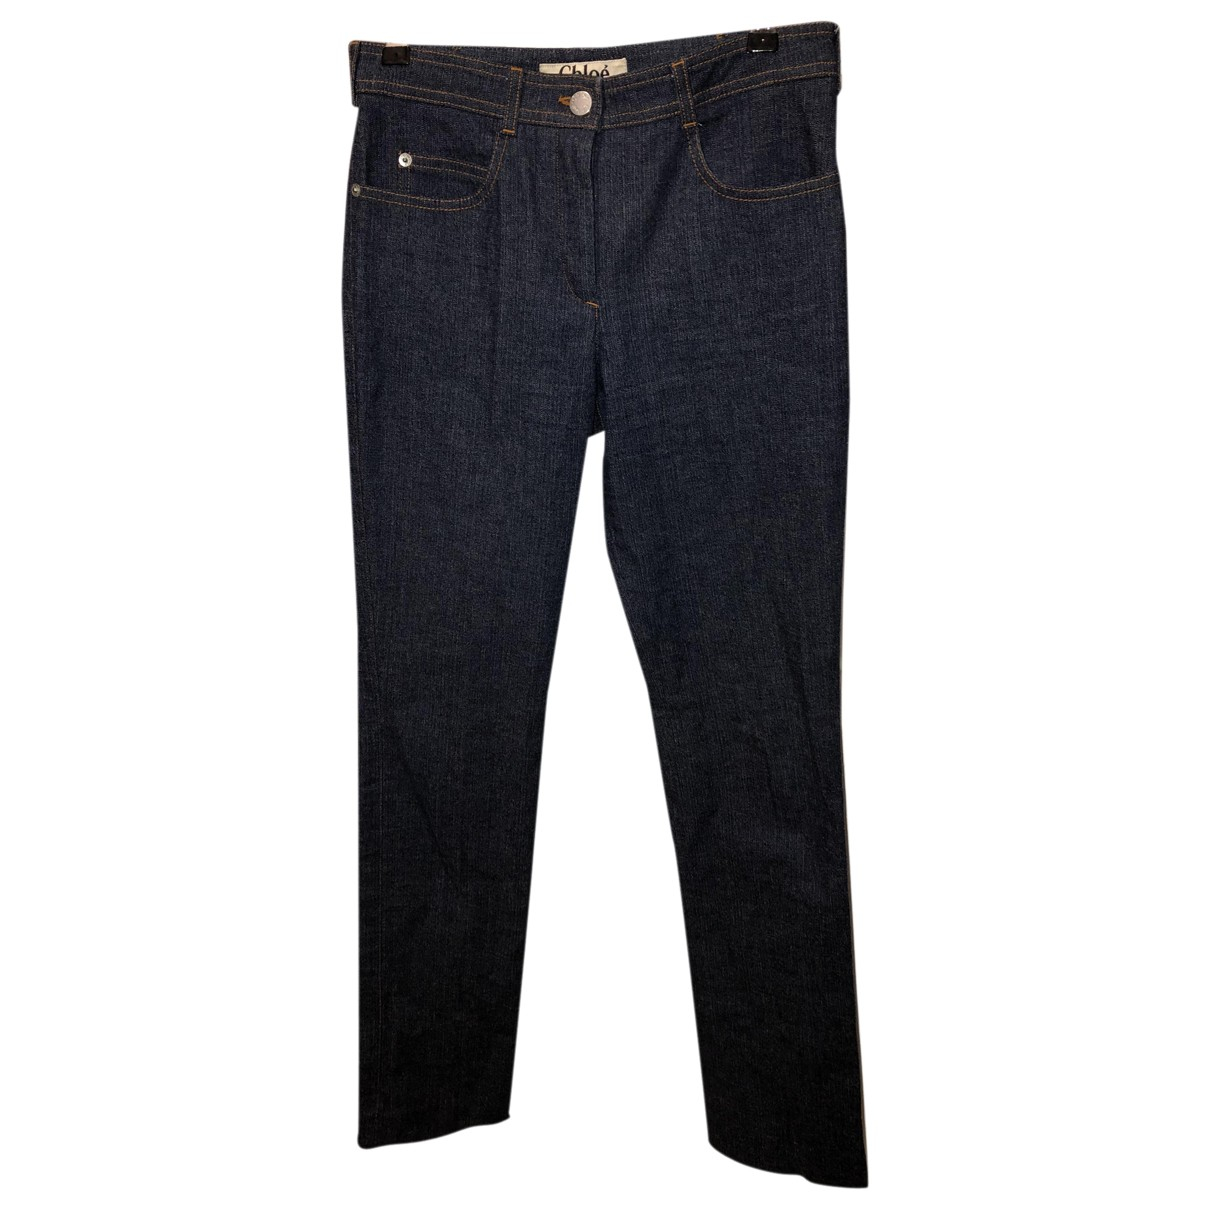 Chloé \N Navy Cotton Jeans for Women 36 FR